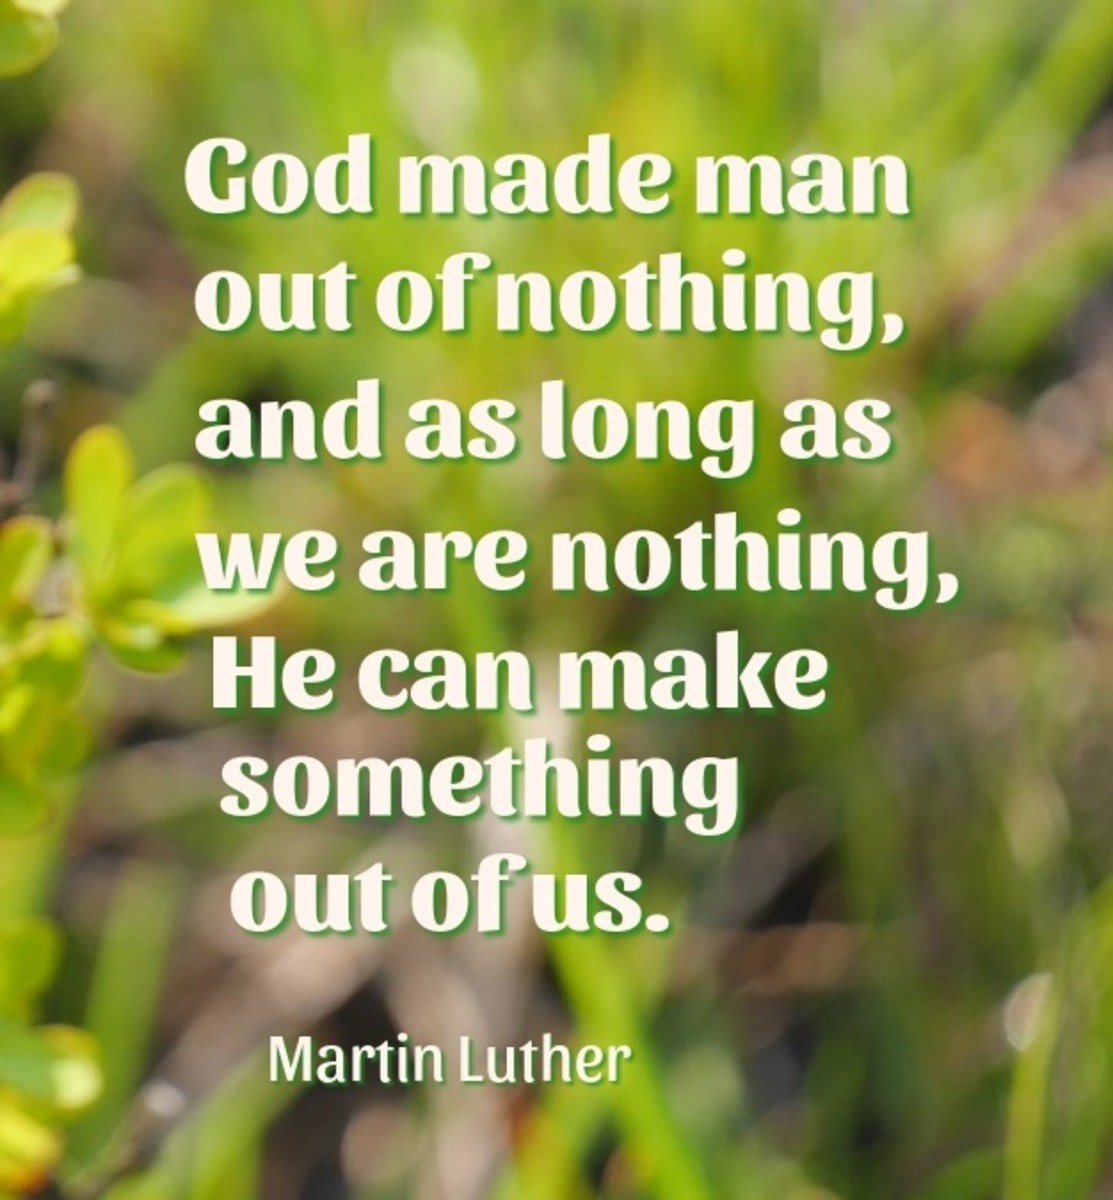 As long as we are nothing, God can make something out of us.